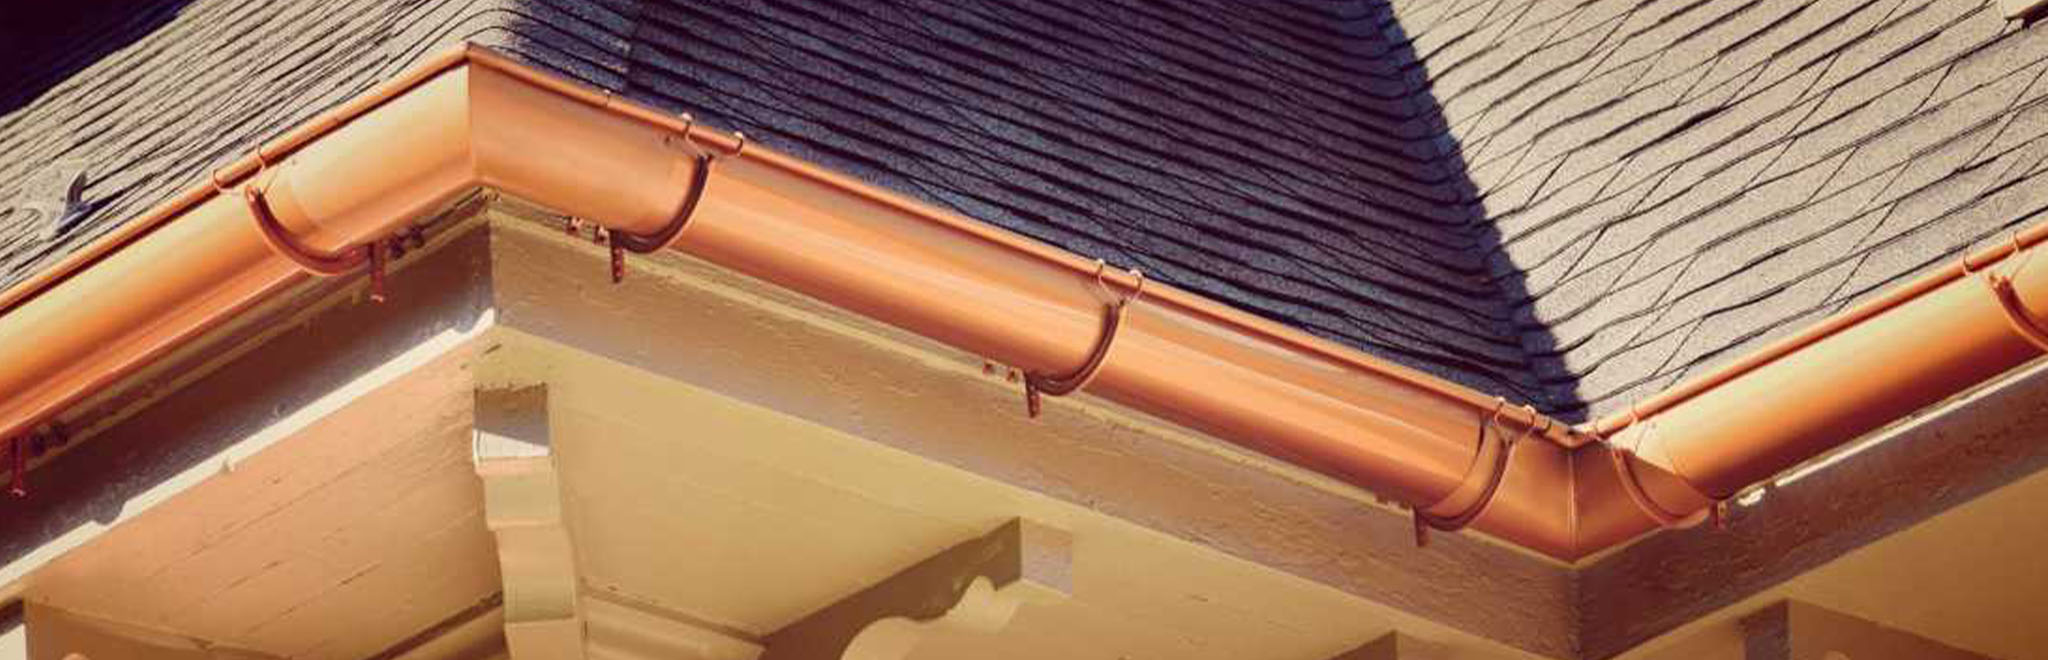 Gutter Installation and Repair Lockport IL